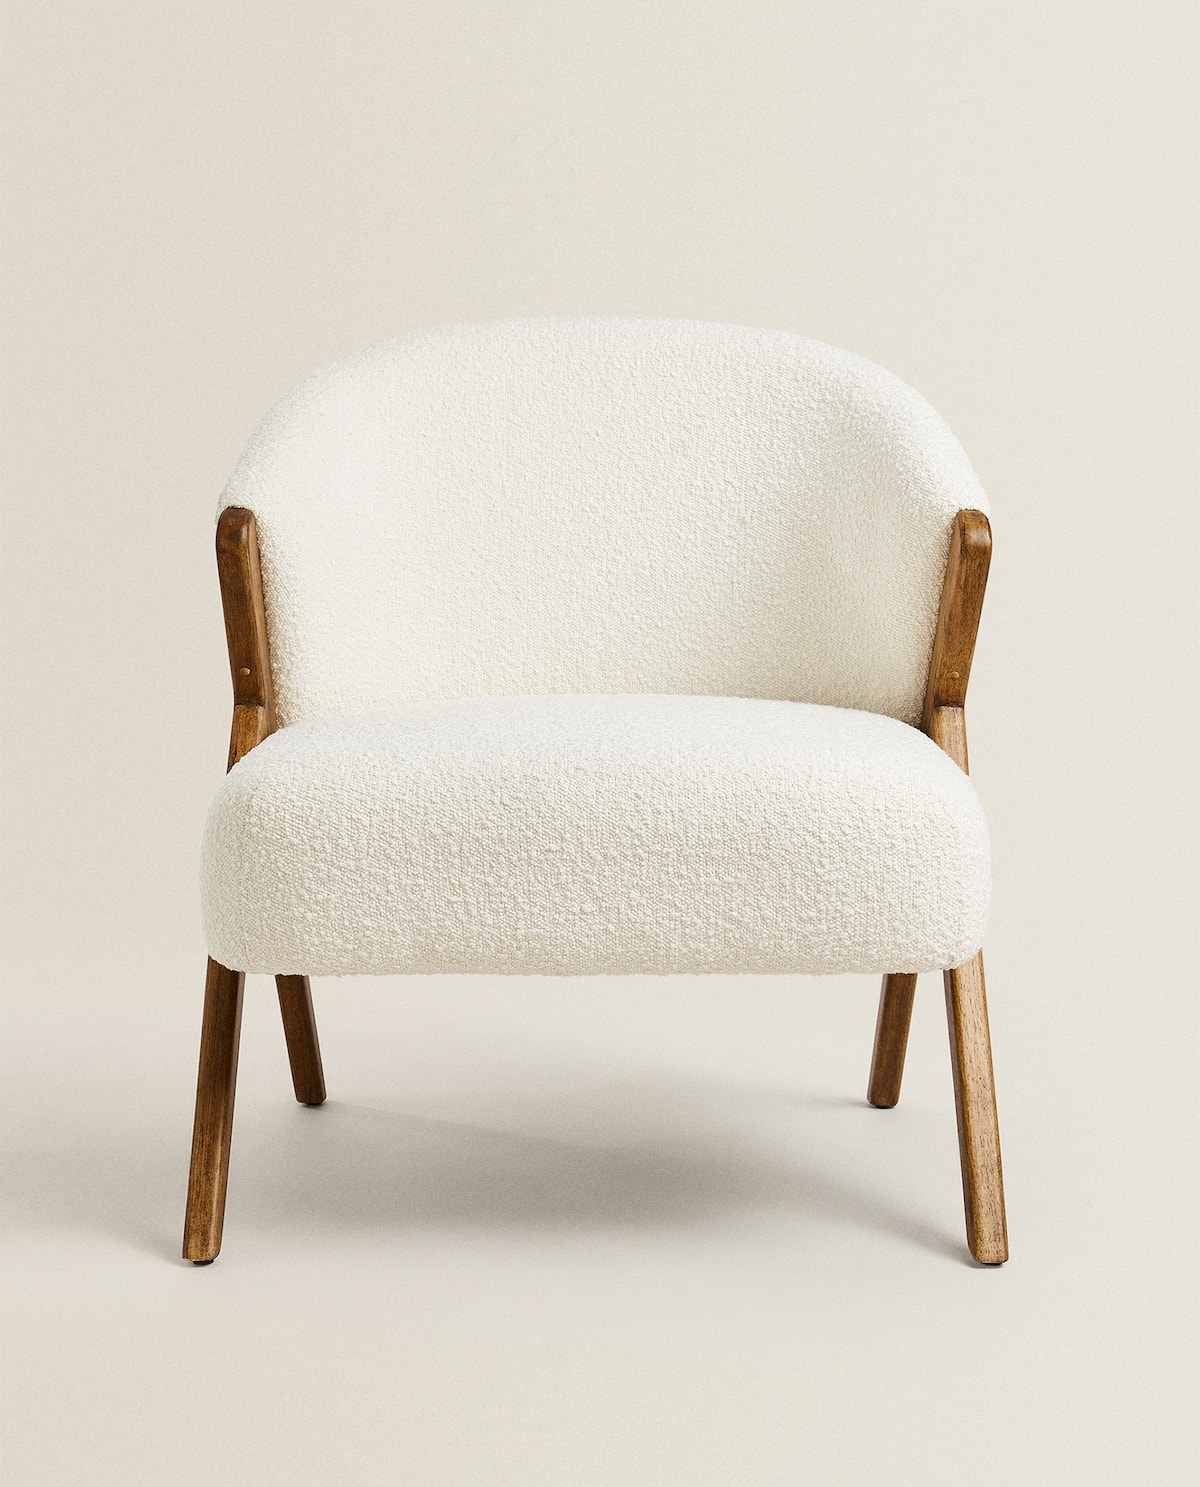 Armchair upholstered in bouclé fabric with contrasting wooden sides and legs